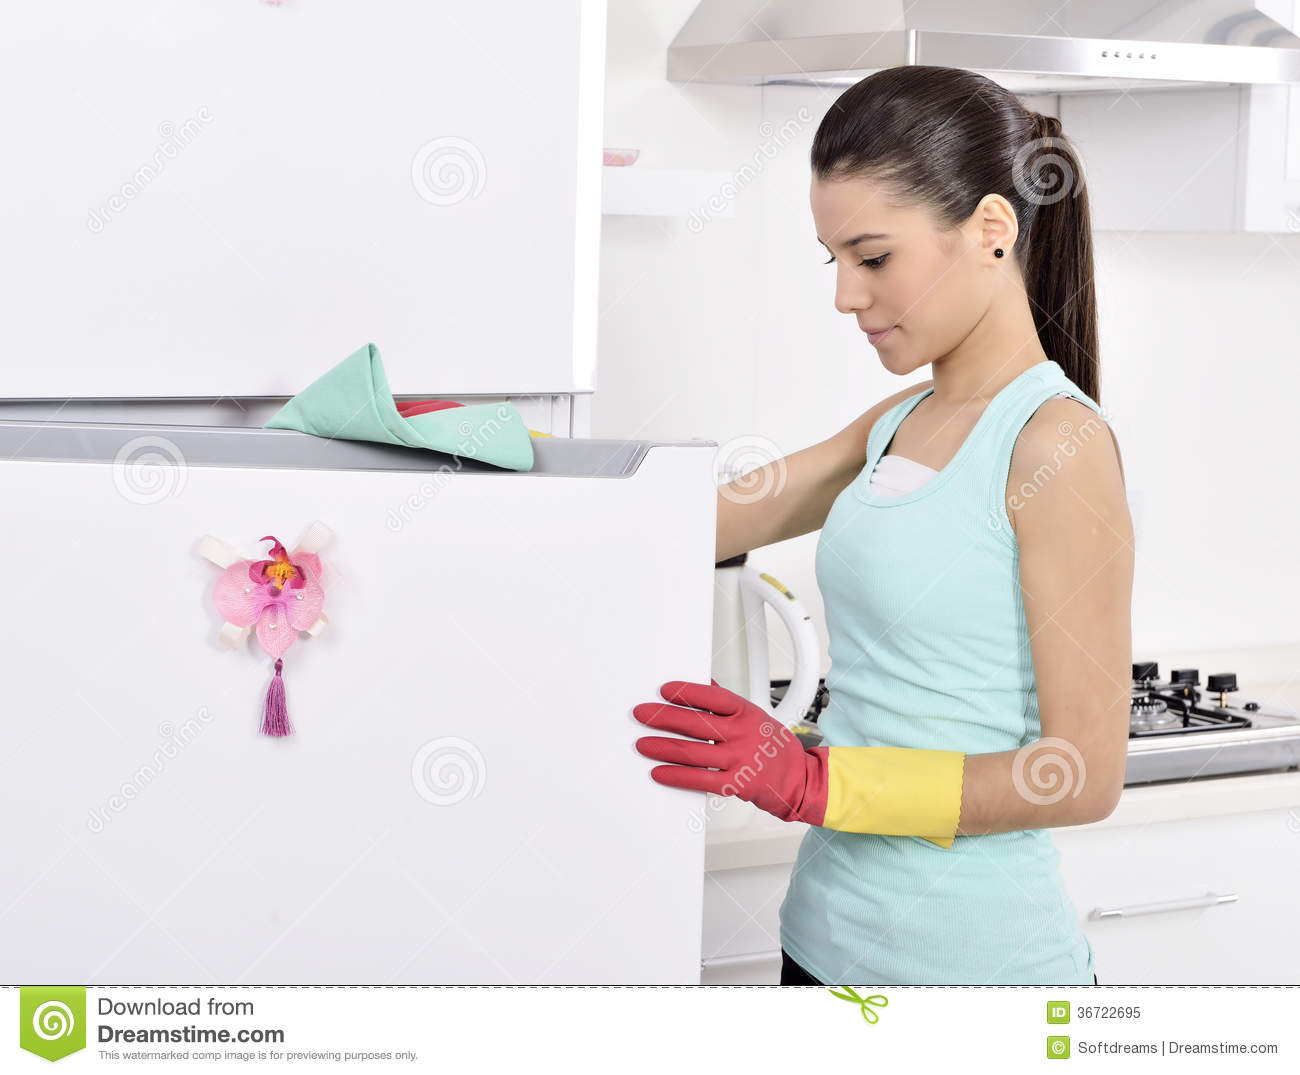 Cleaning the house stock image image of casual for House cleaning stock photos